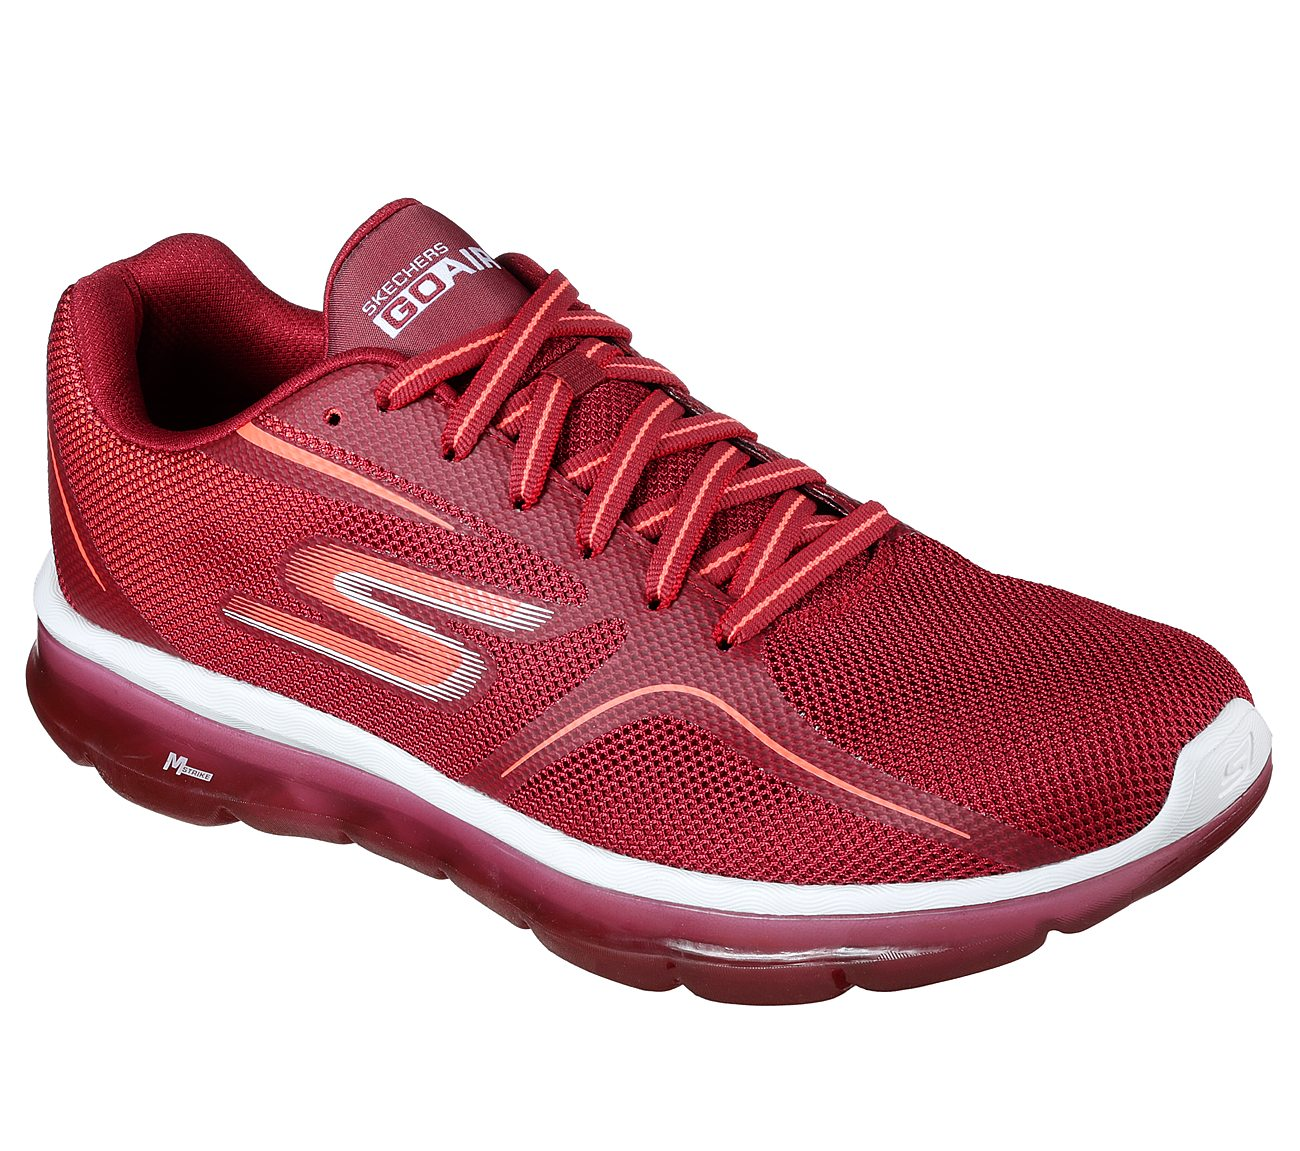 Buy a Skechers Gift Card (4 stars) 8 ratings Granny is the largest website for discount gift cards, gathering all of the best Skechers gift card discounts, in real time.